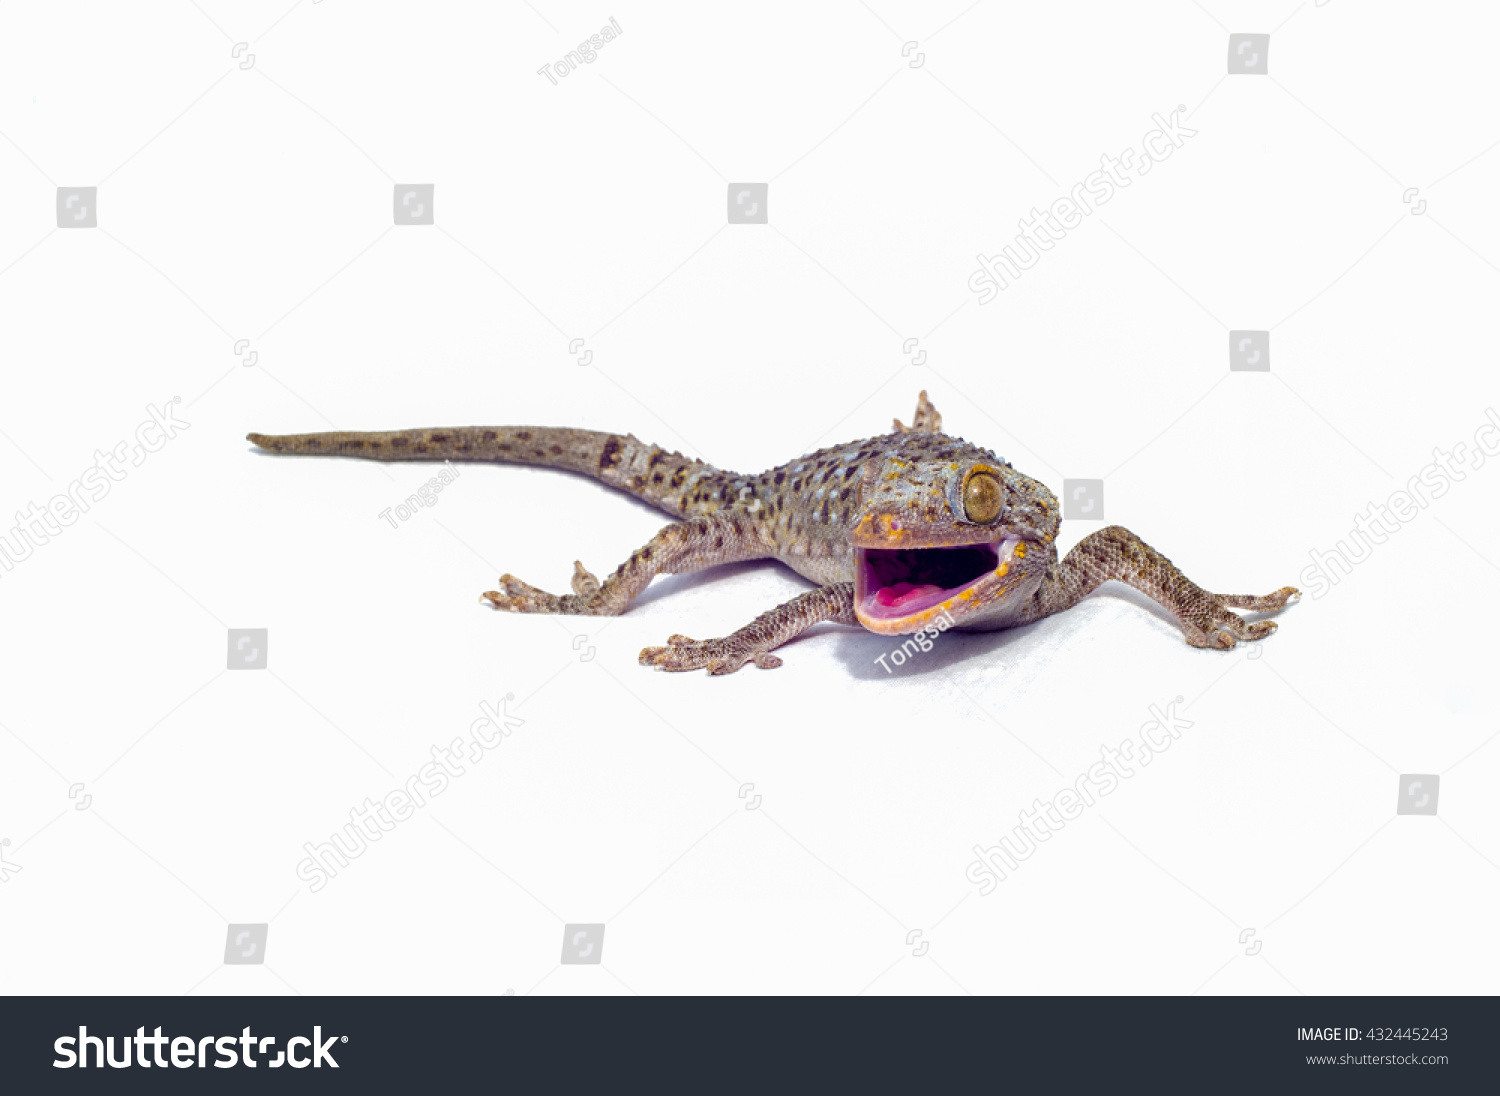 Geckos Lizards Eat Insects Animals Climbing Stock Photo Edit Now